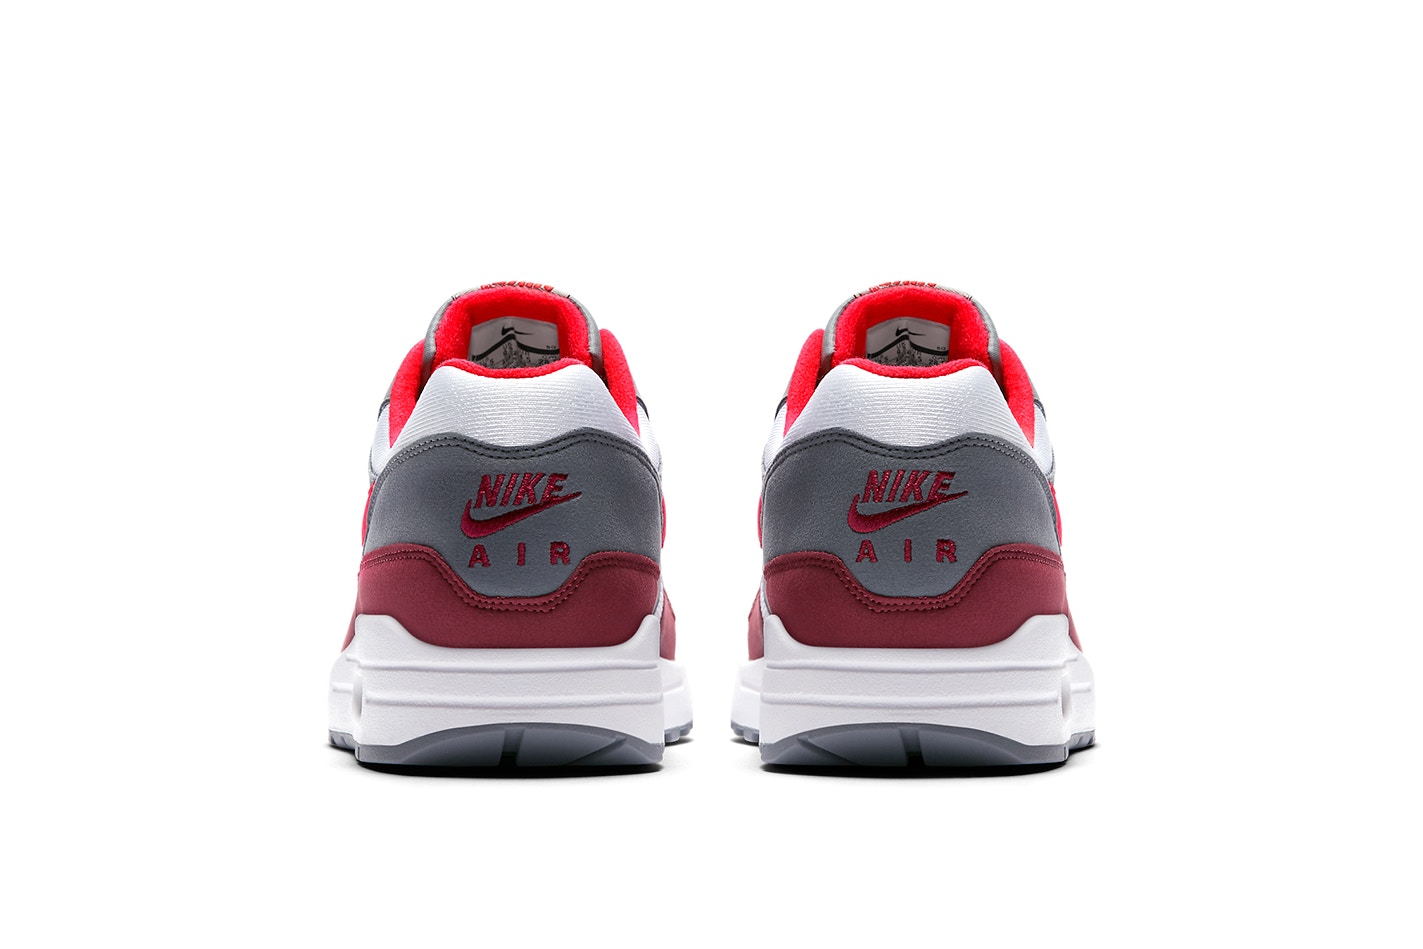 Nike Air Max 1 Back in New